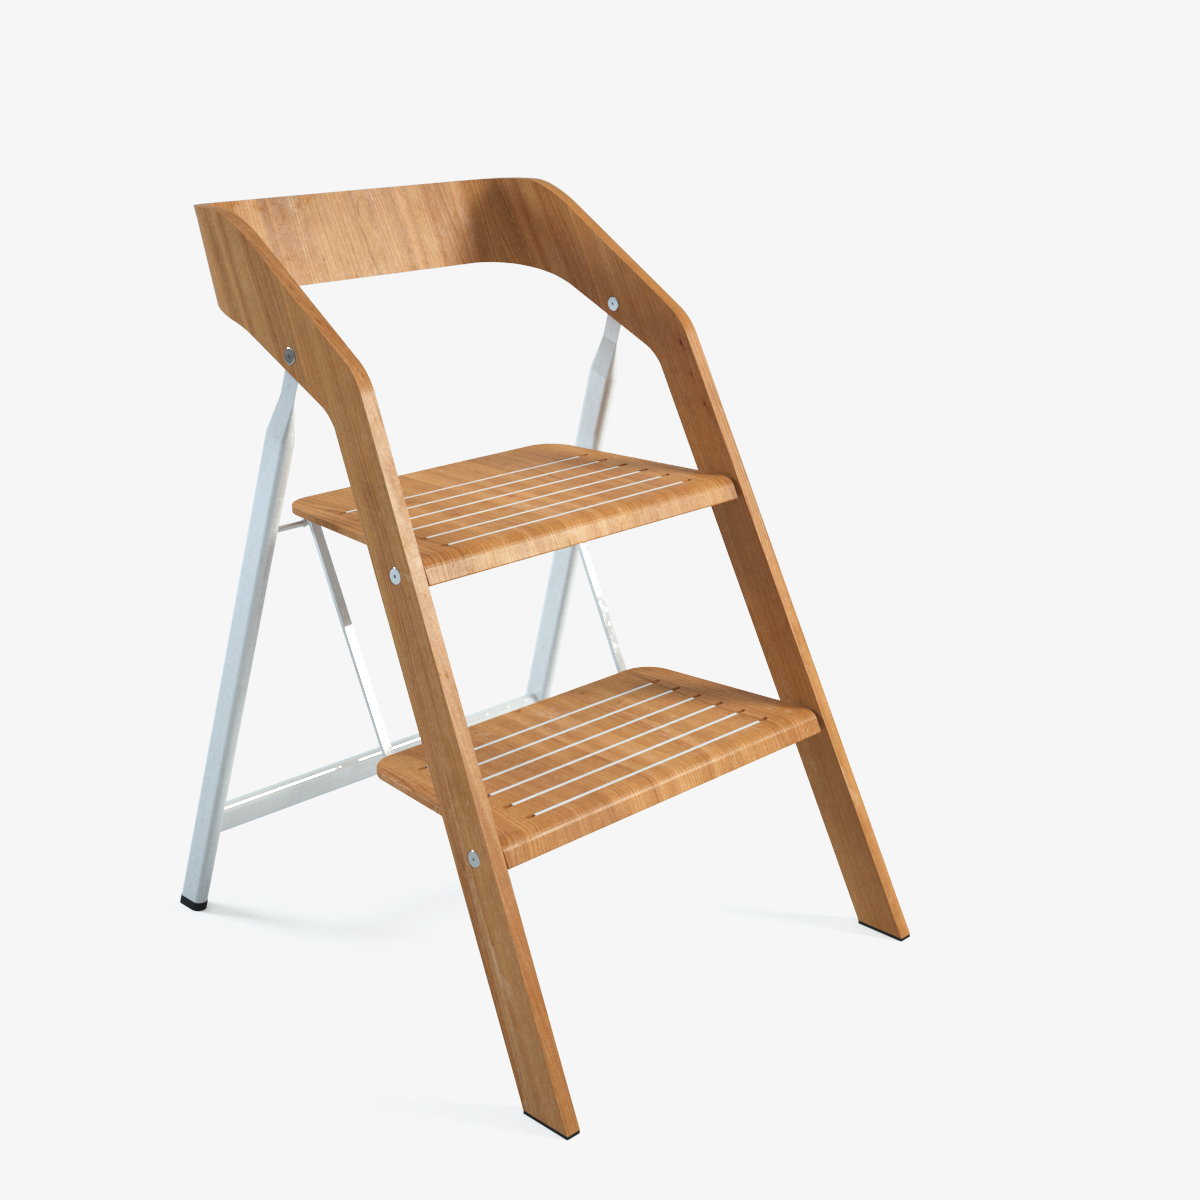 Awesome Chair Step Ladder #5 - Vintage Usit Stepladder Chair 2-step Version 3d Model Max 1 ...